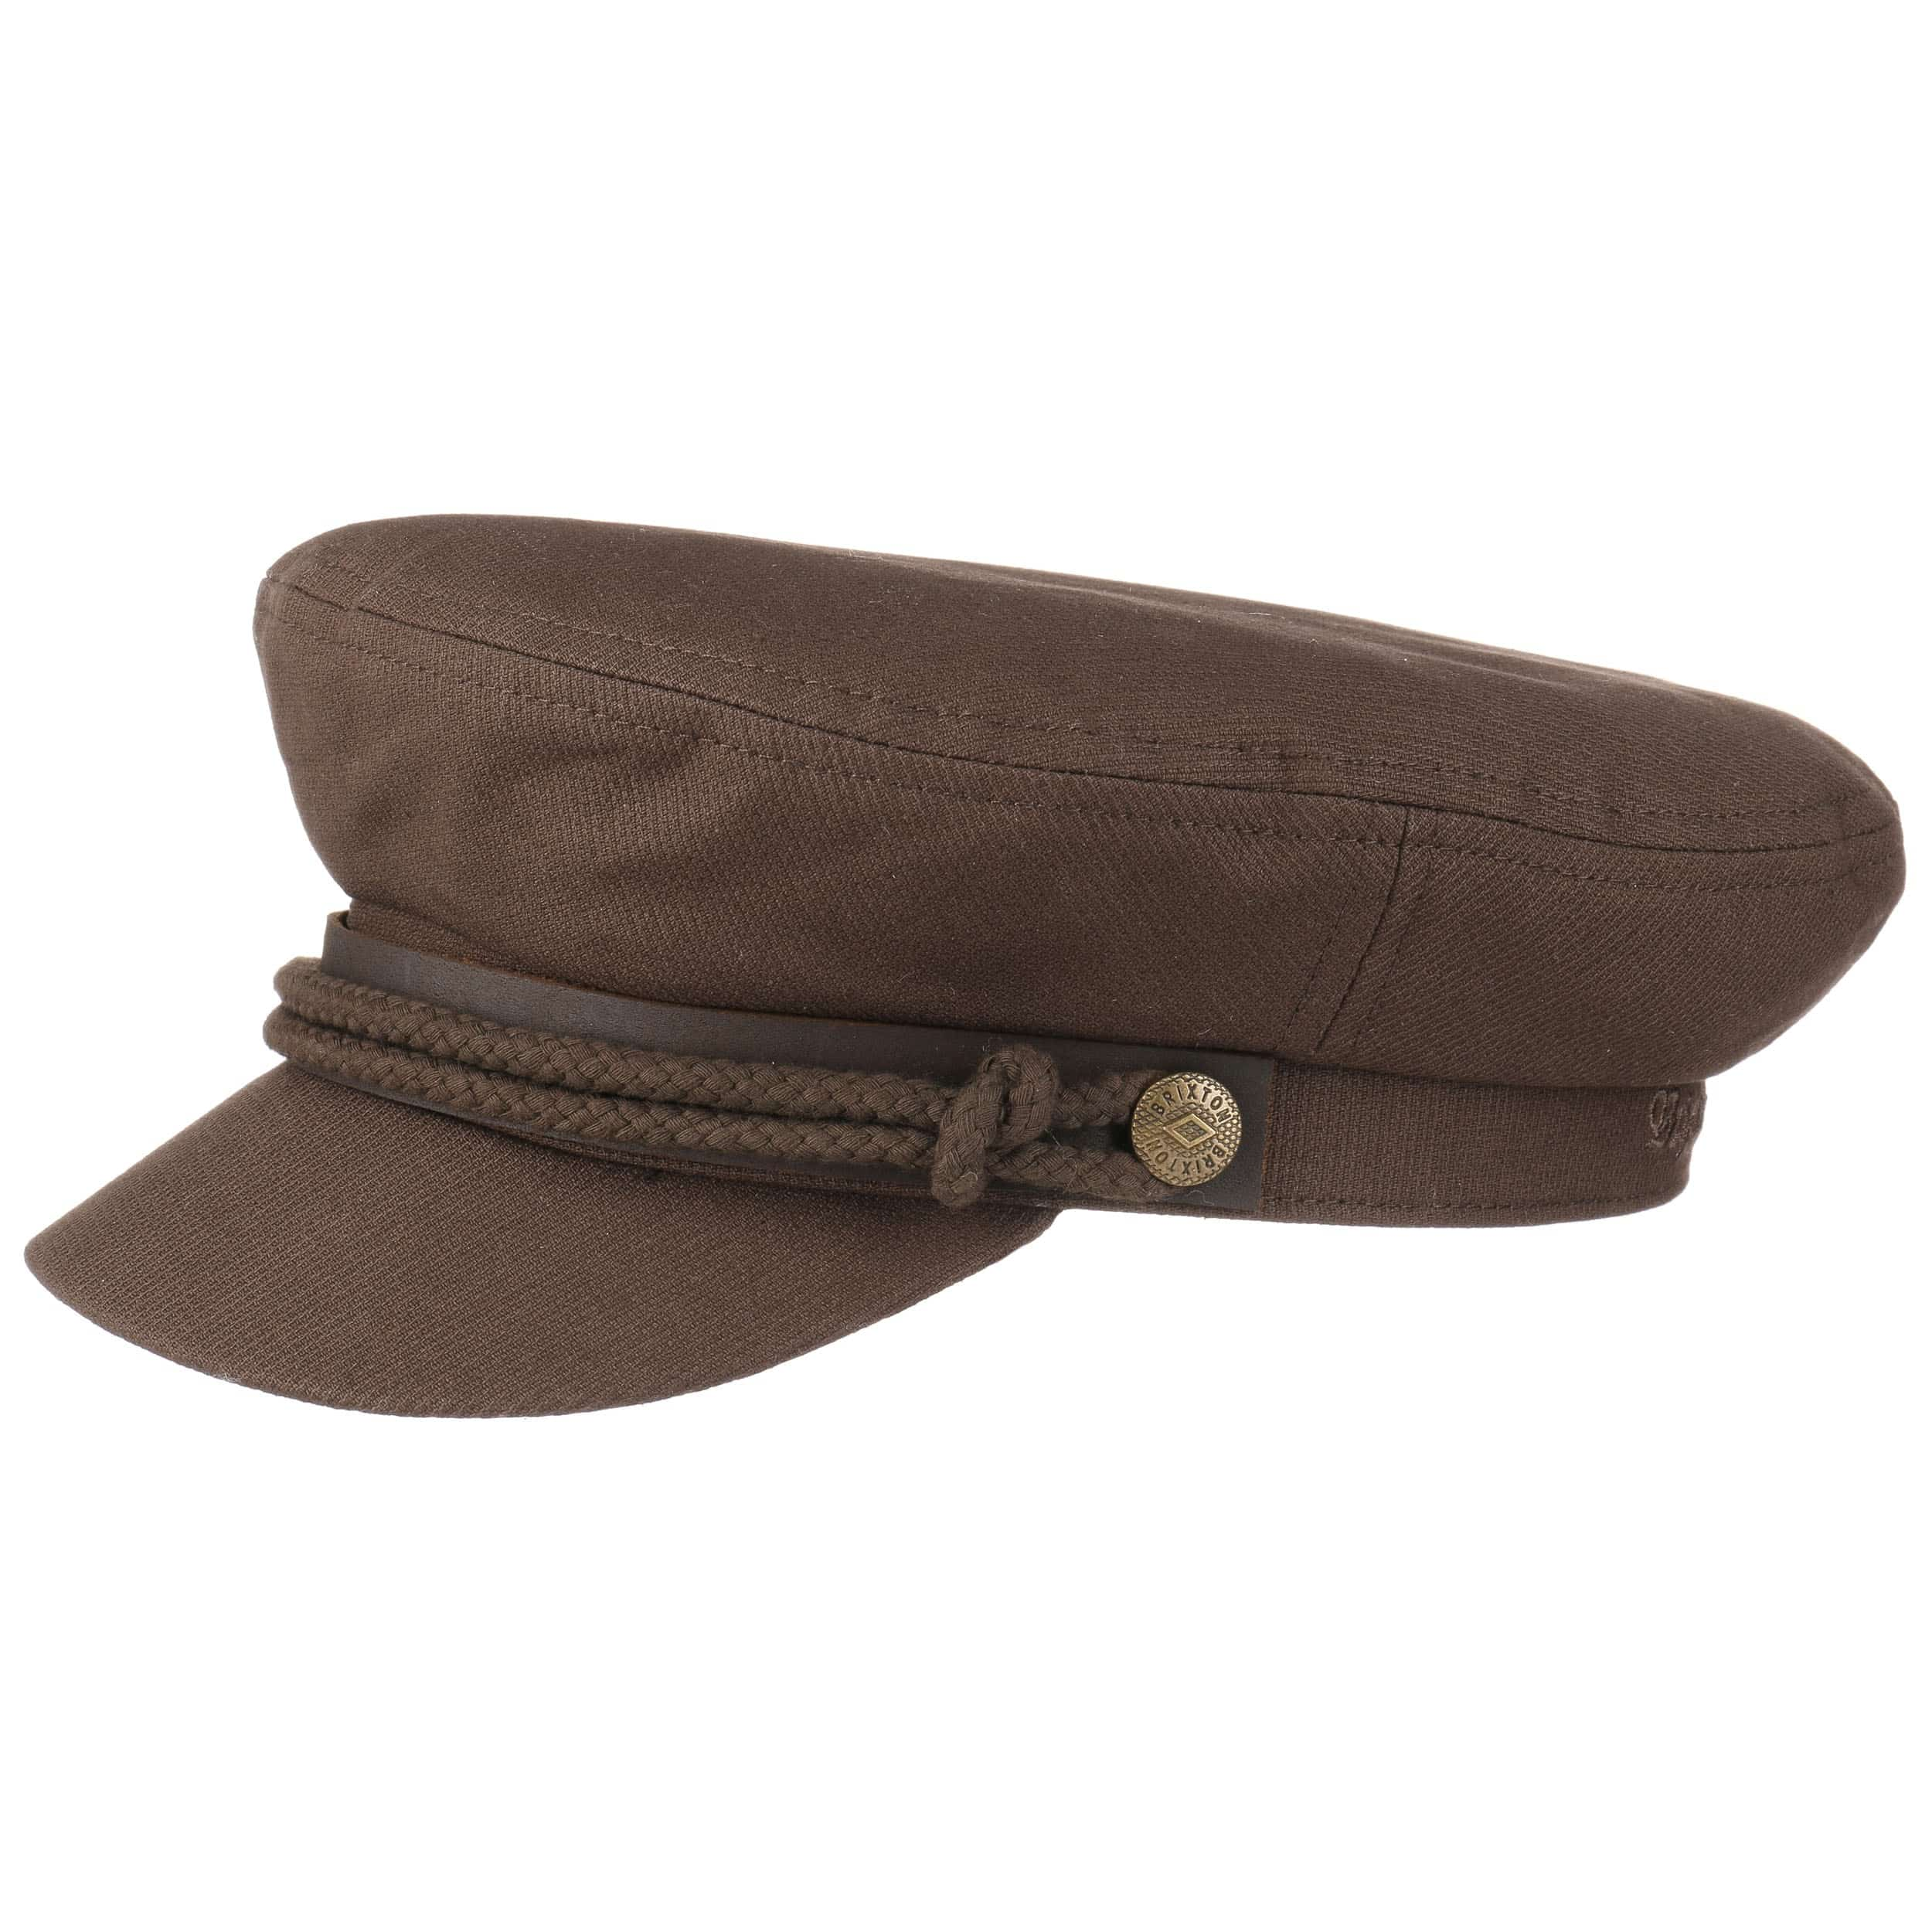 21f553aa4099f2 ... hot fiddler corduroy fishermans cap by brixton brown 7 fb55c 4023c